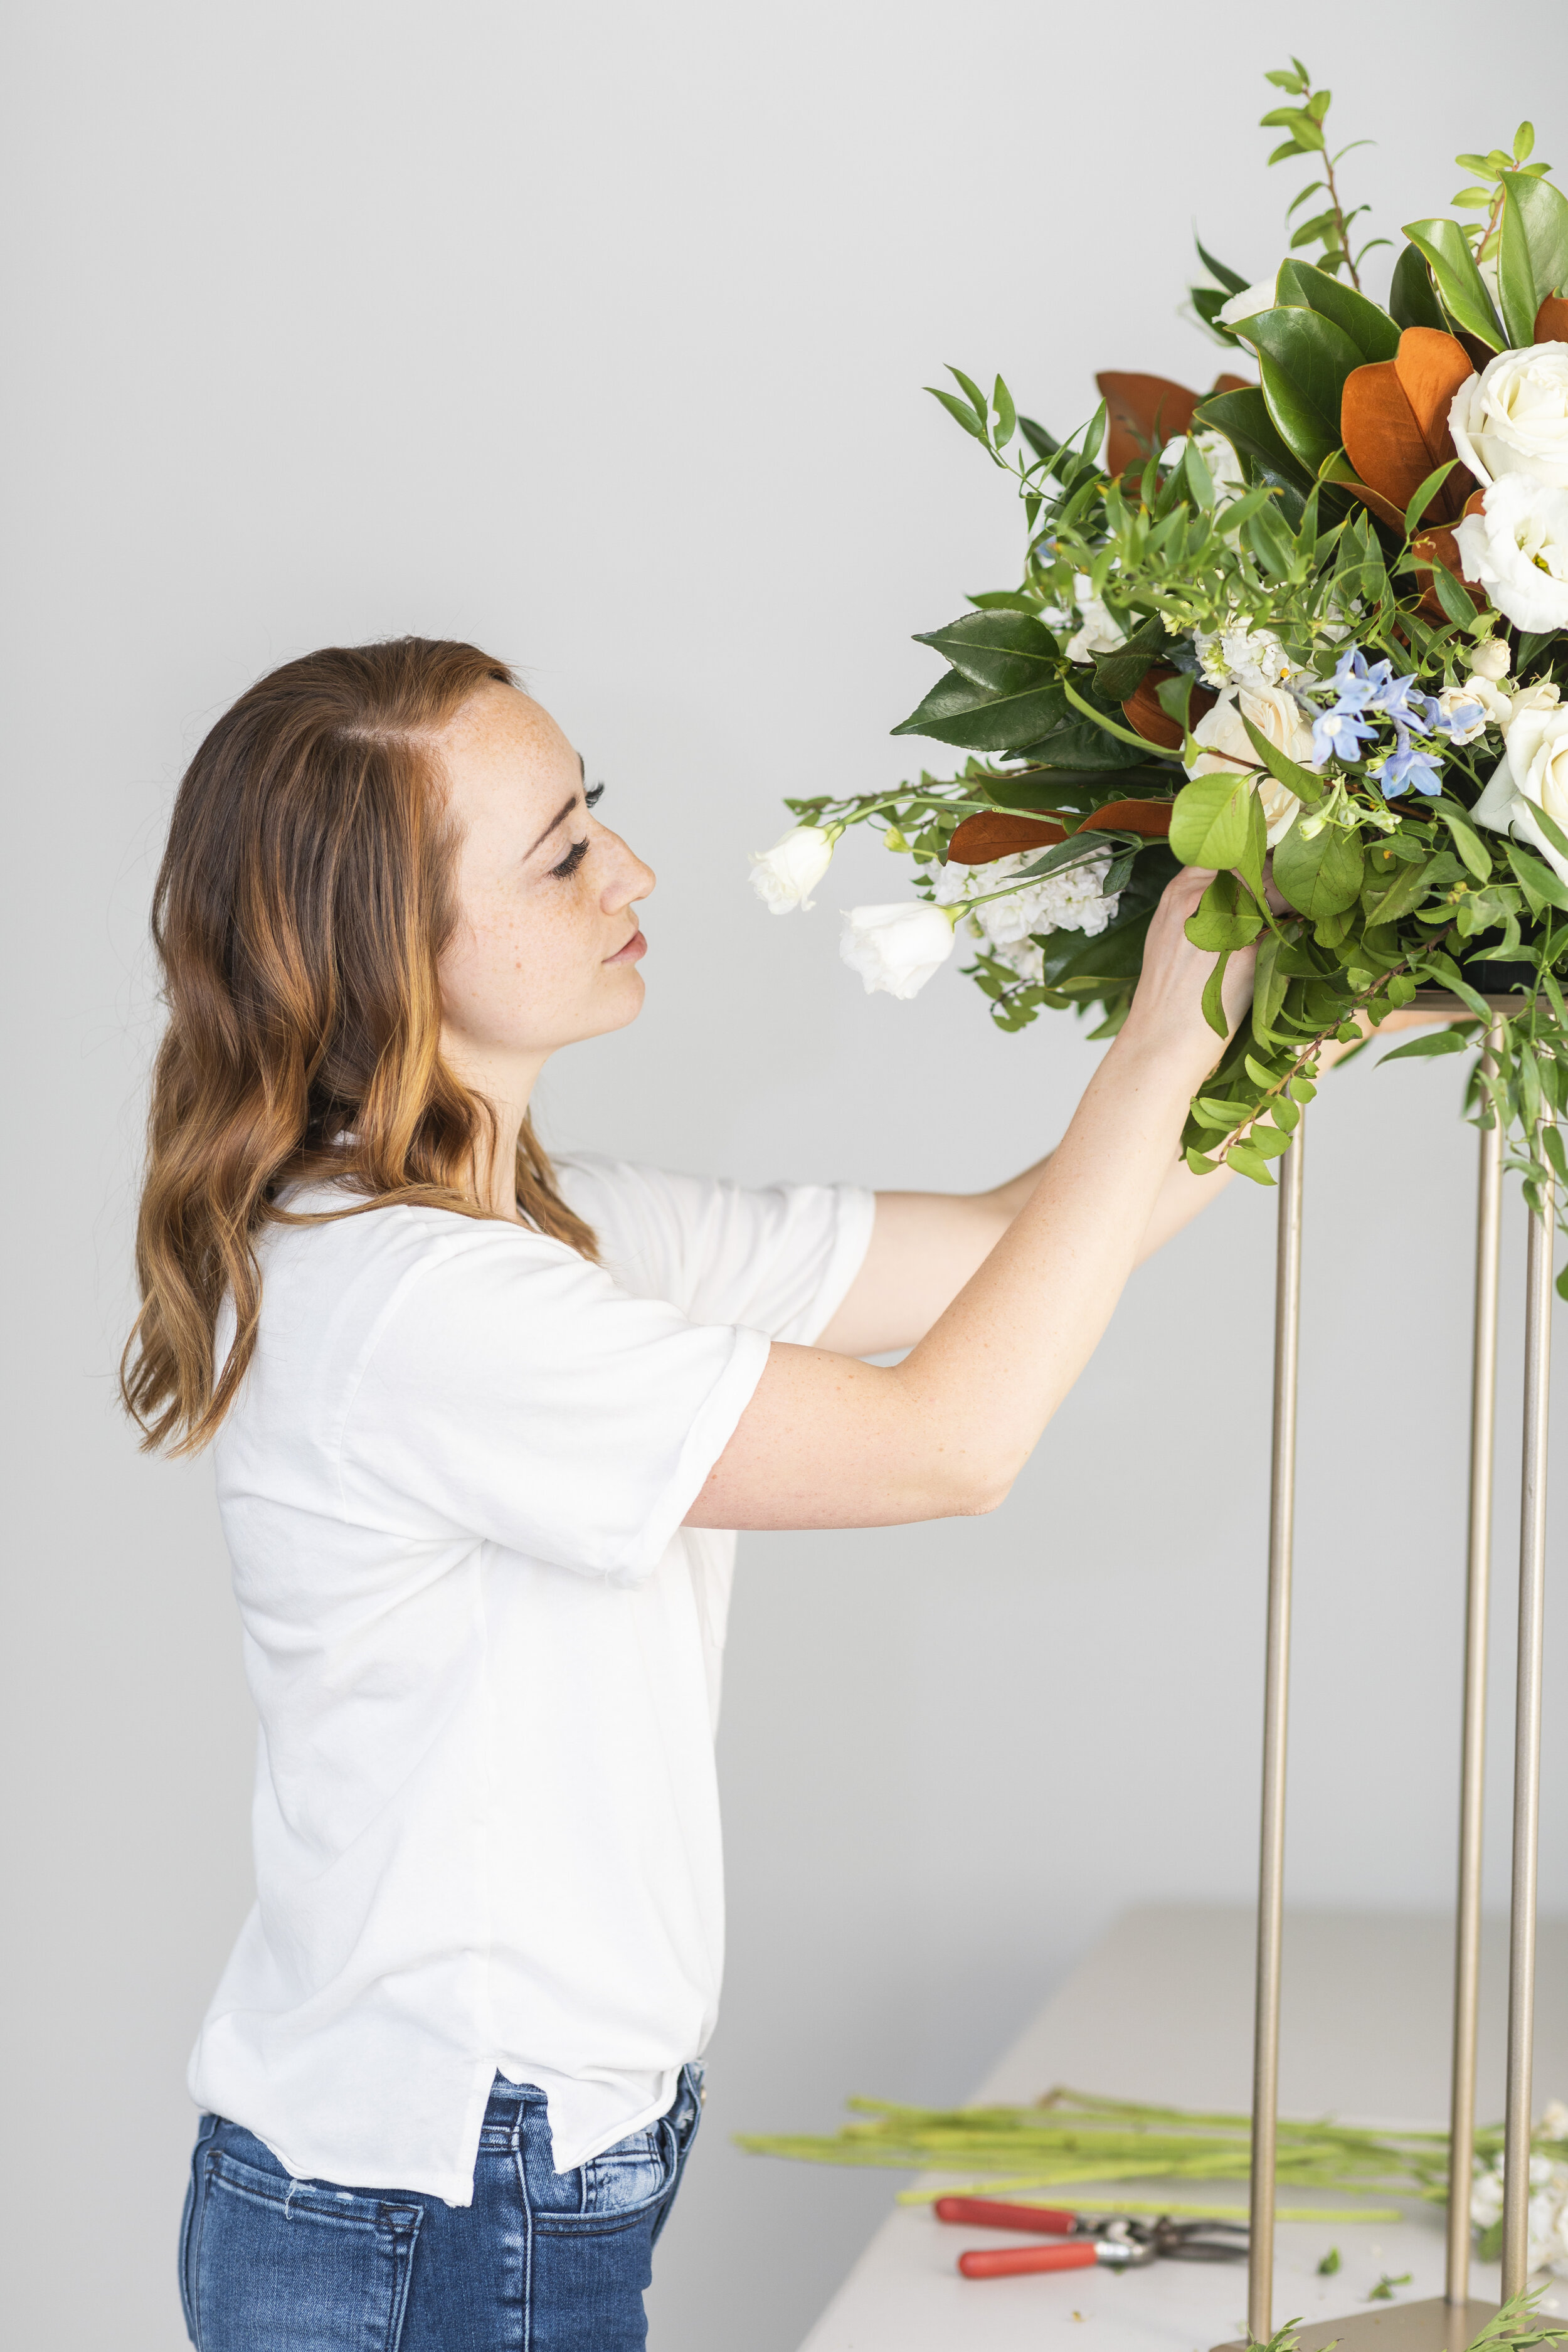 see a florist in her element sarah will show you pictures that showcase her ideas style and aesthetic of her floral creations tip from a professional florist learn how to hold your bouquet for wedding pictures so your flowers look  their best sarah from blushing rose floral  #floristtips #tipsandtricks #vendorspotlight #blushingrosefloral #florist #utahcounty #wedding #inspiration #help #flowers